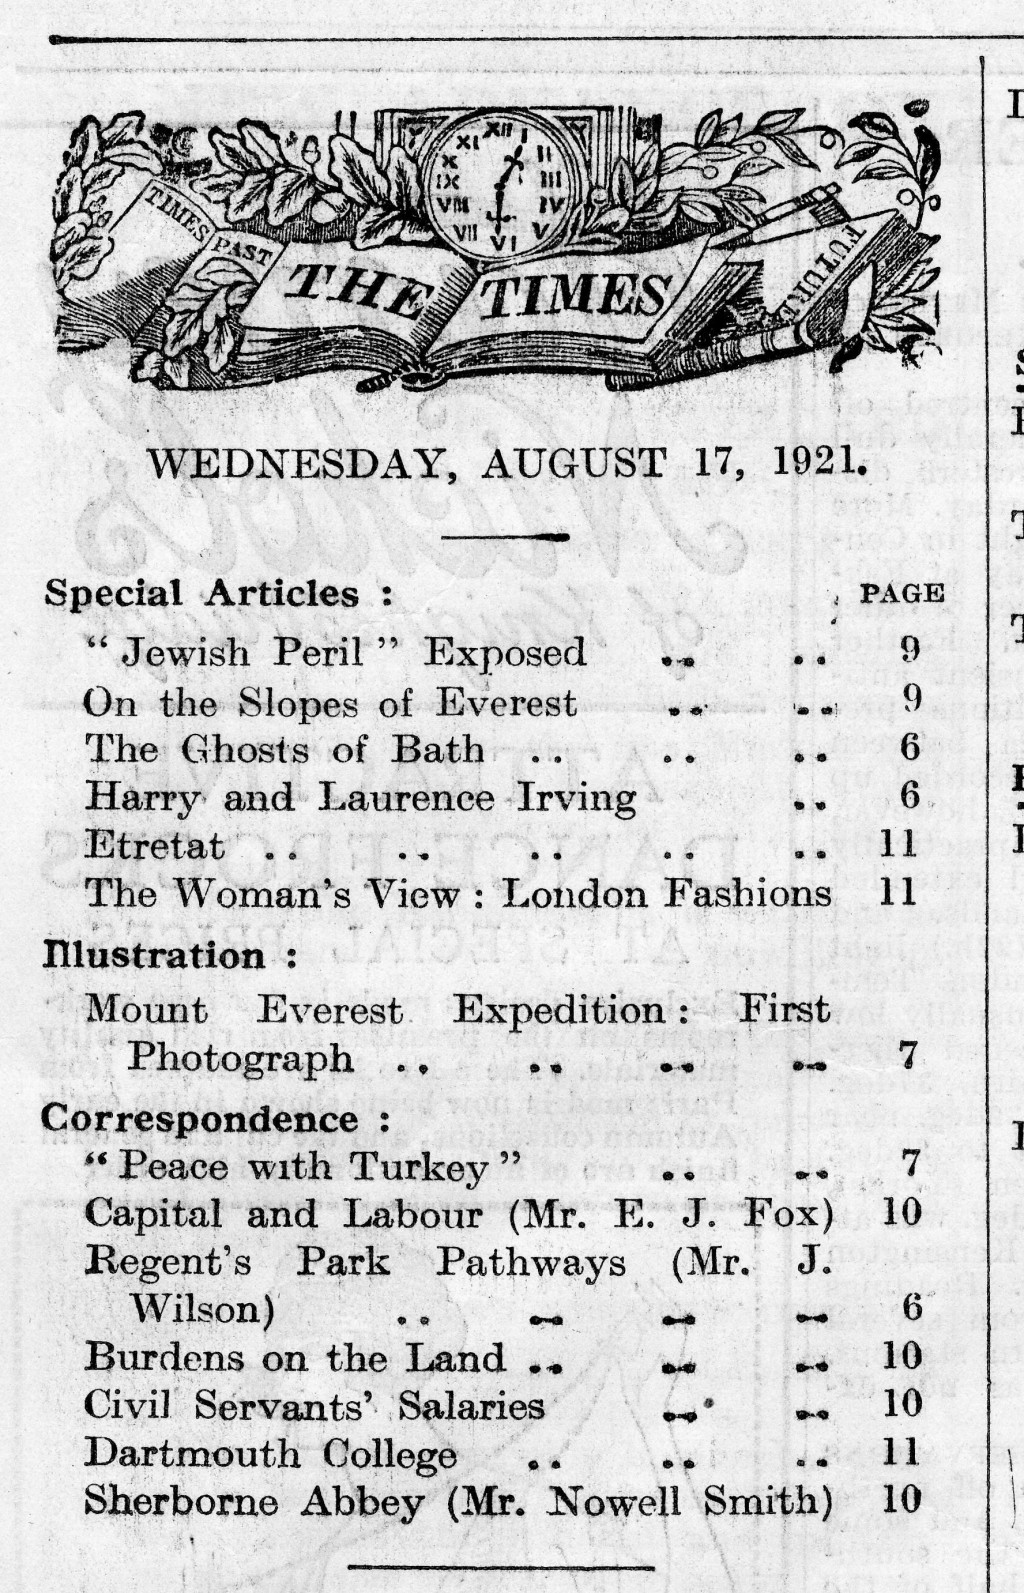 The Times, August 17, 1921 [LCID: 2006ukyb]